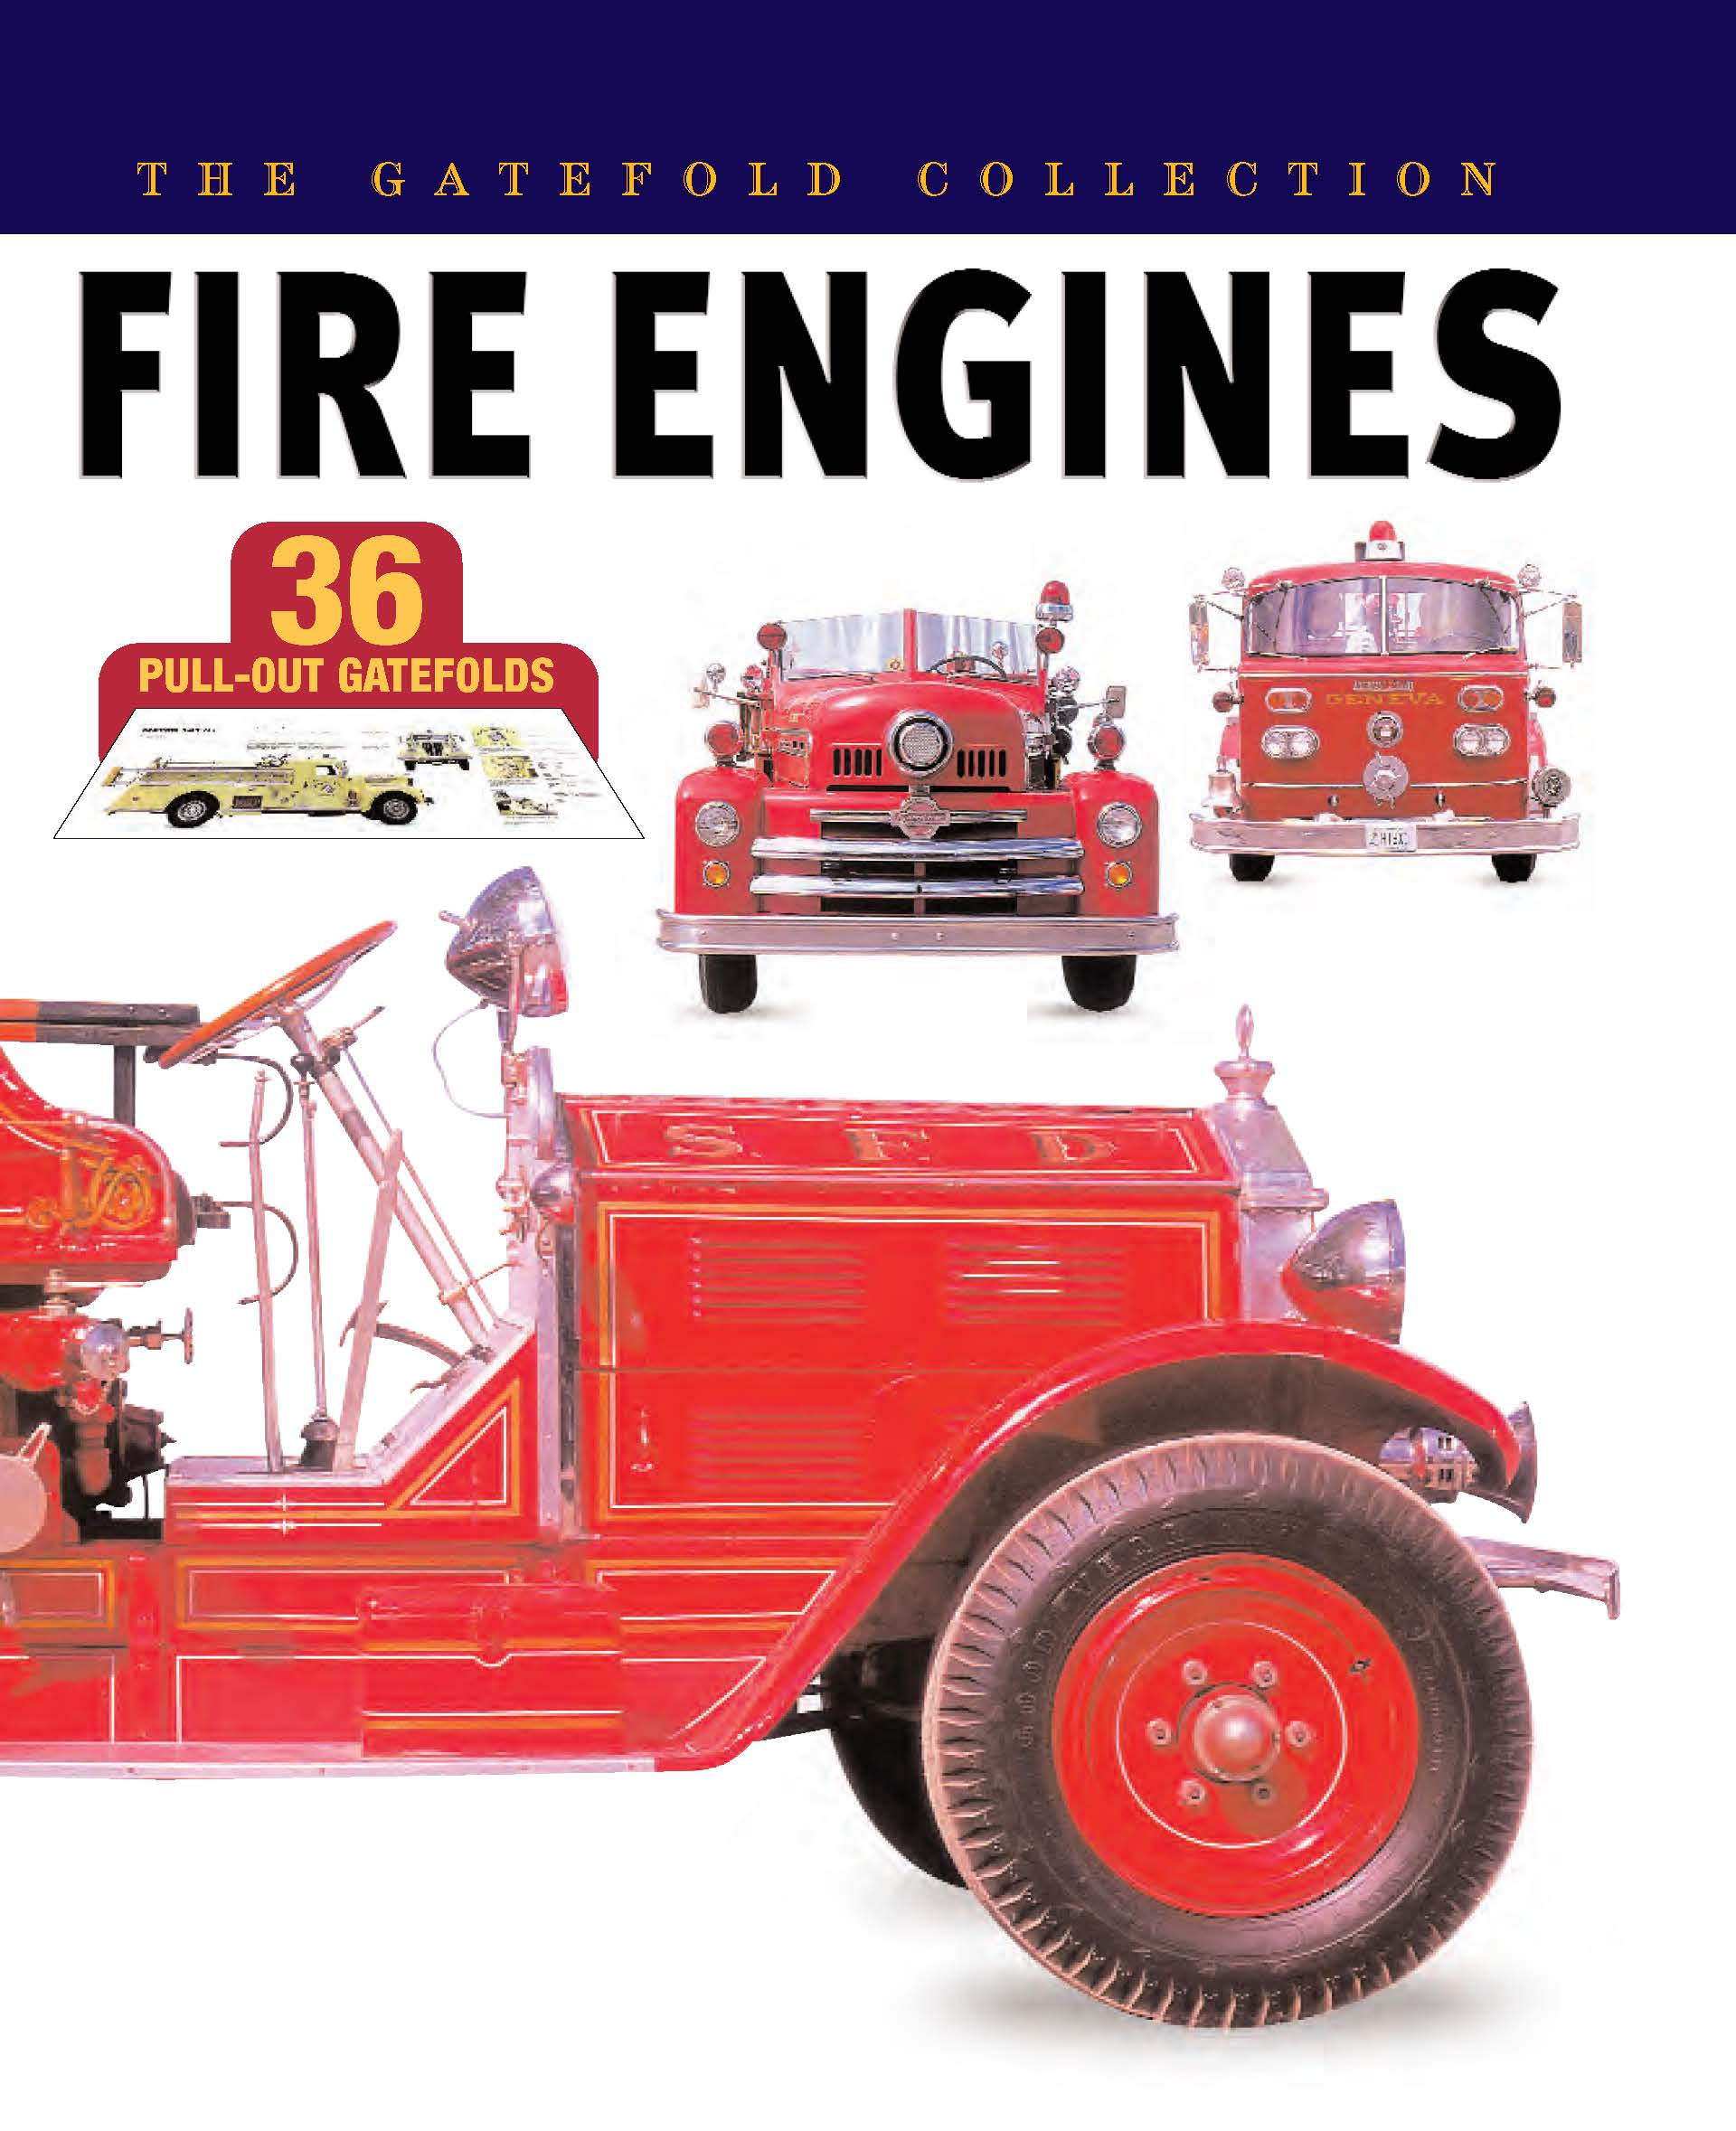 Fire Engines: The Gatefold Collection